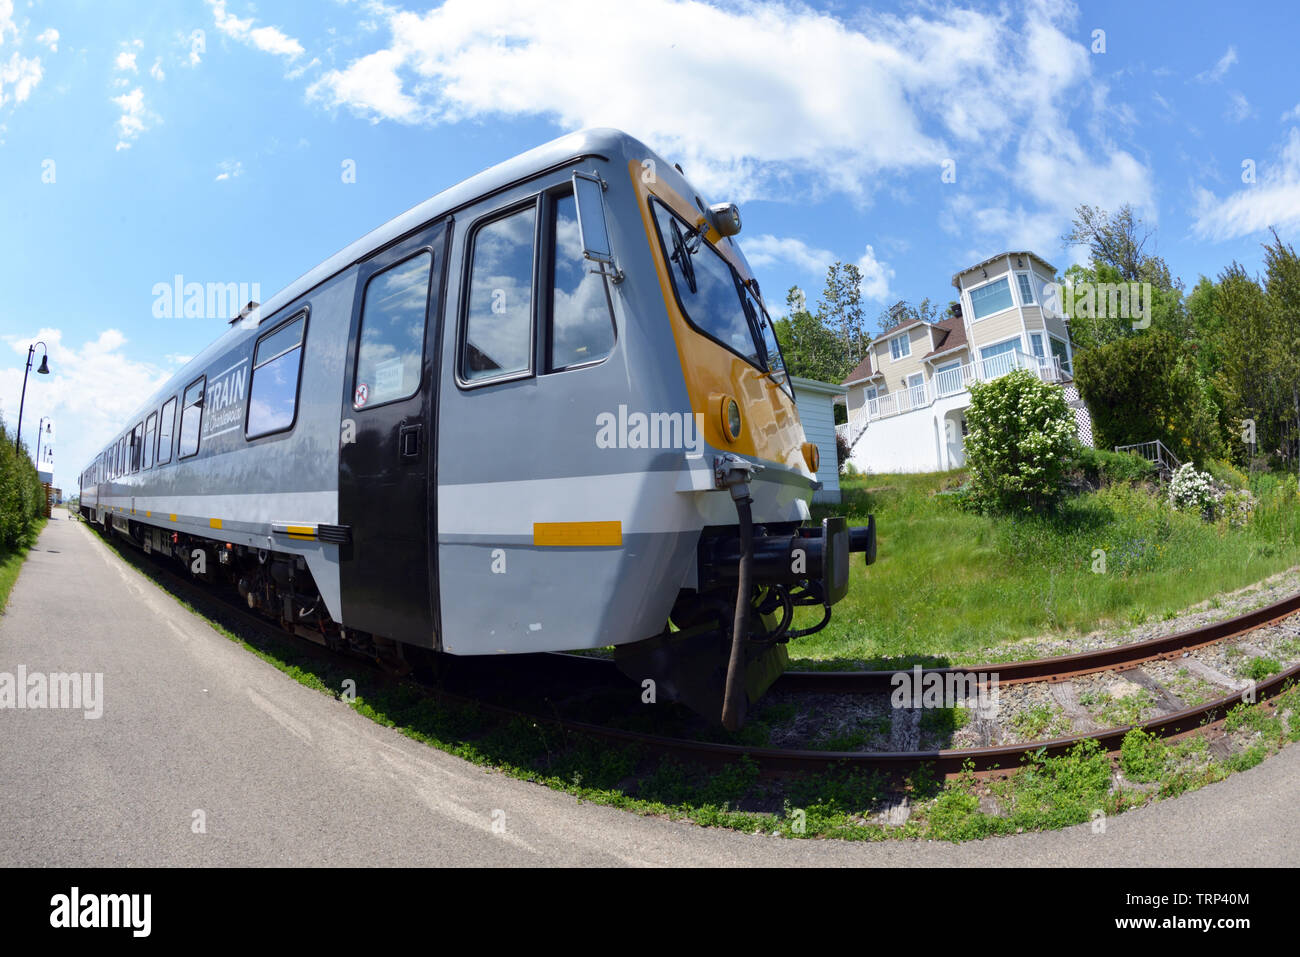 Train of Charlevoix, Québec - Stock Image